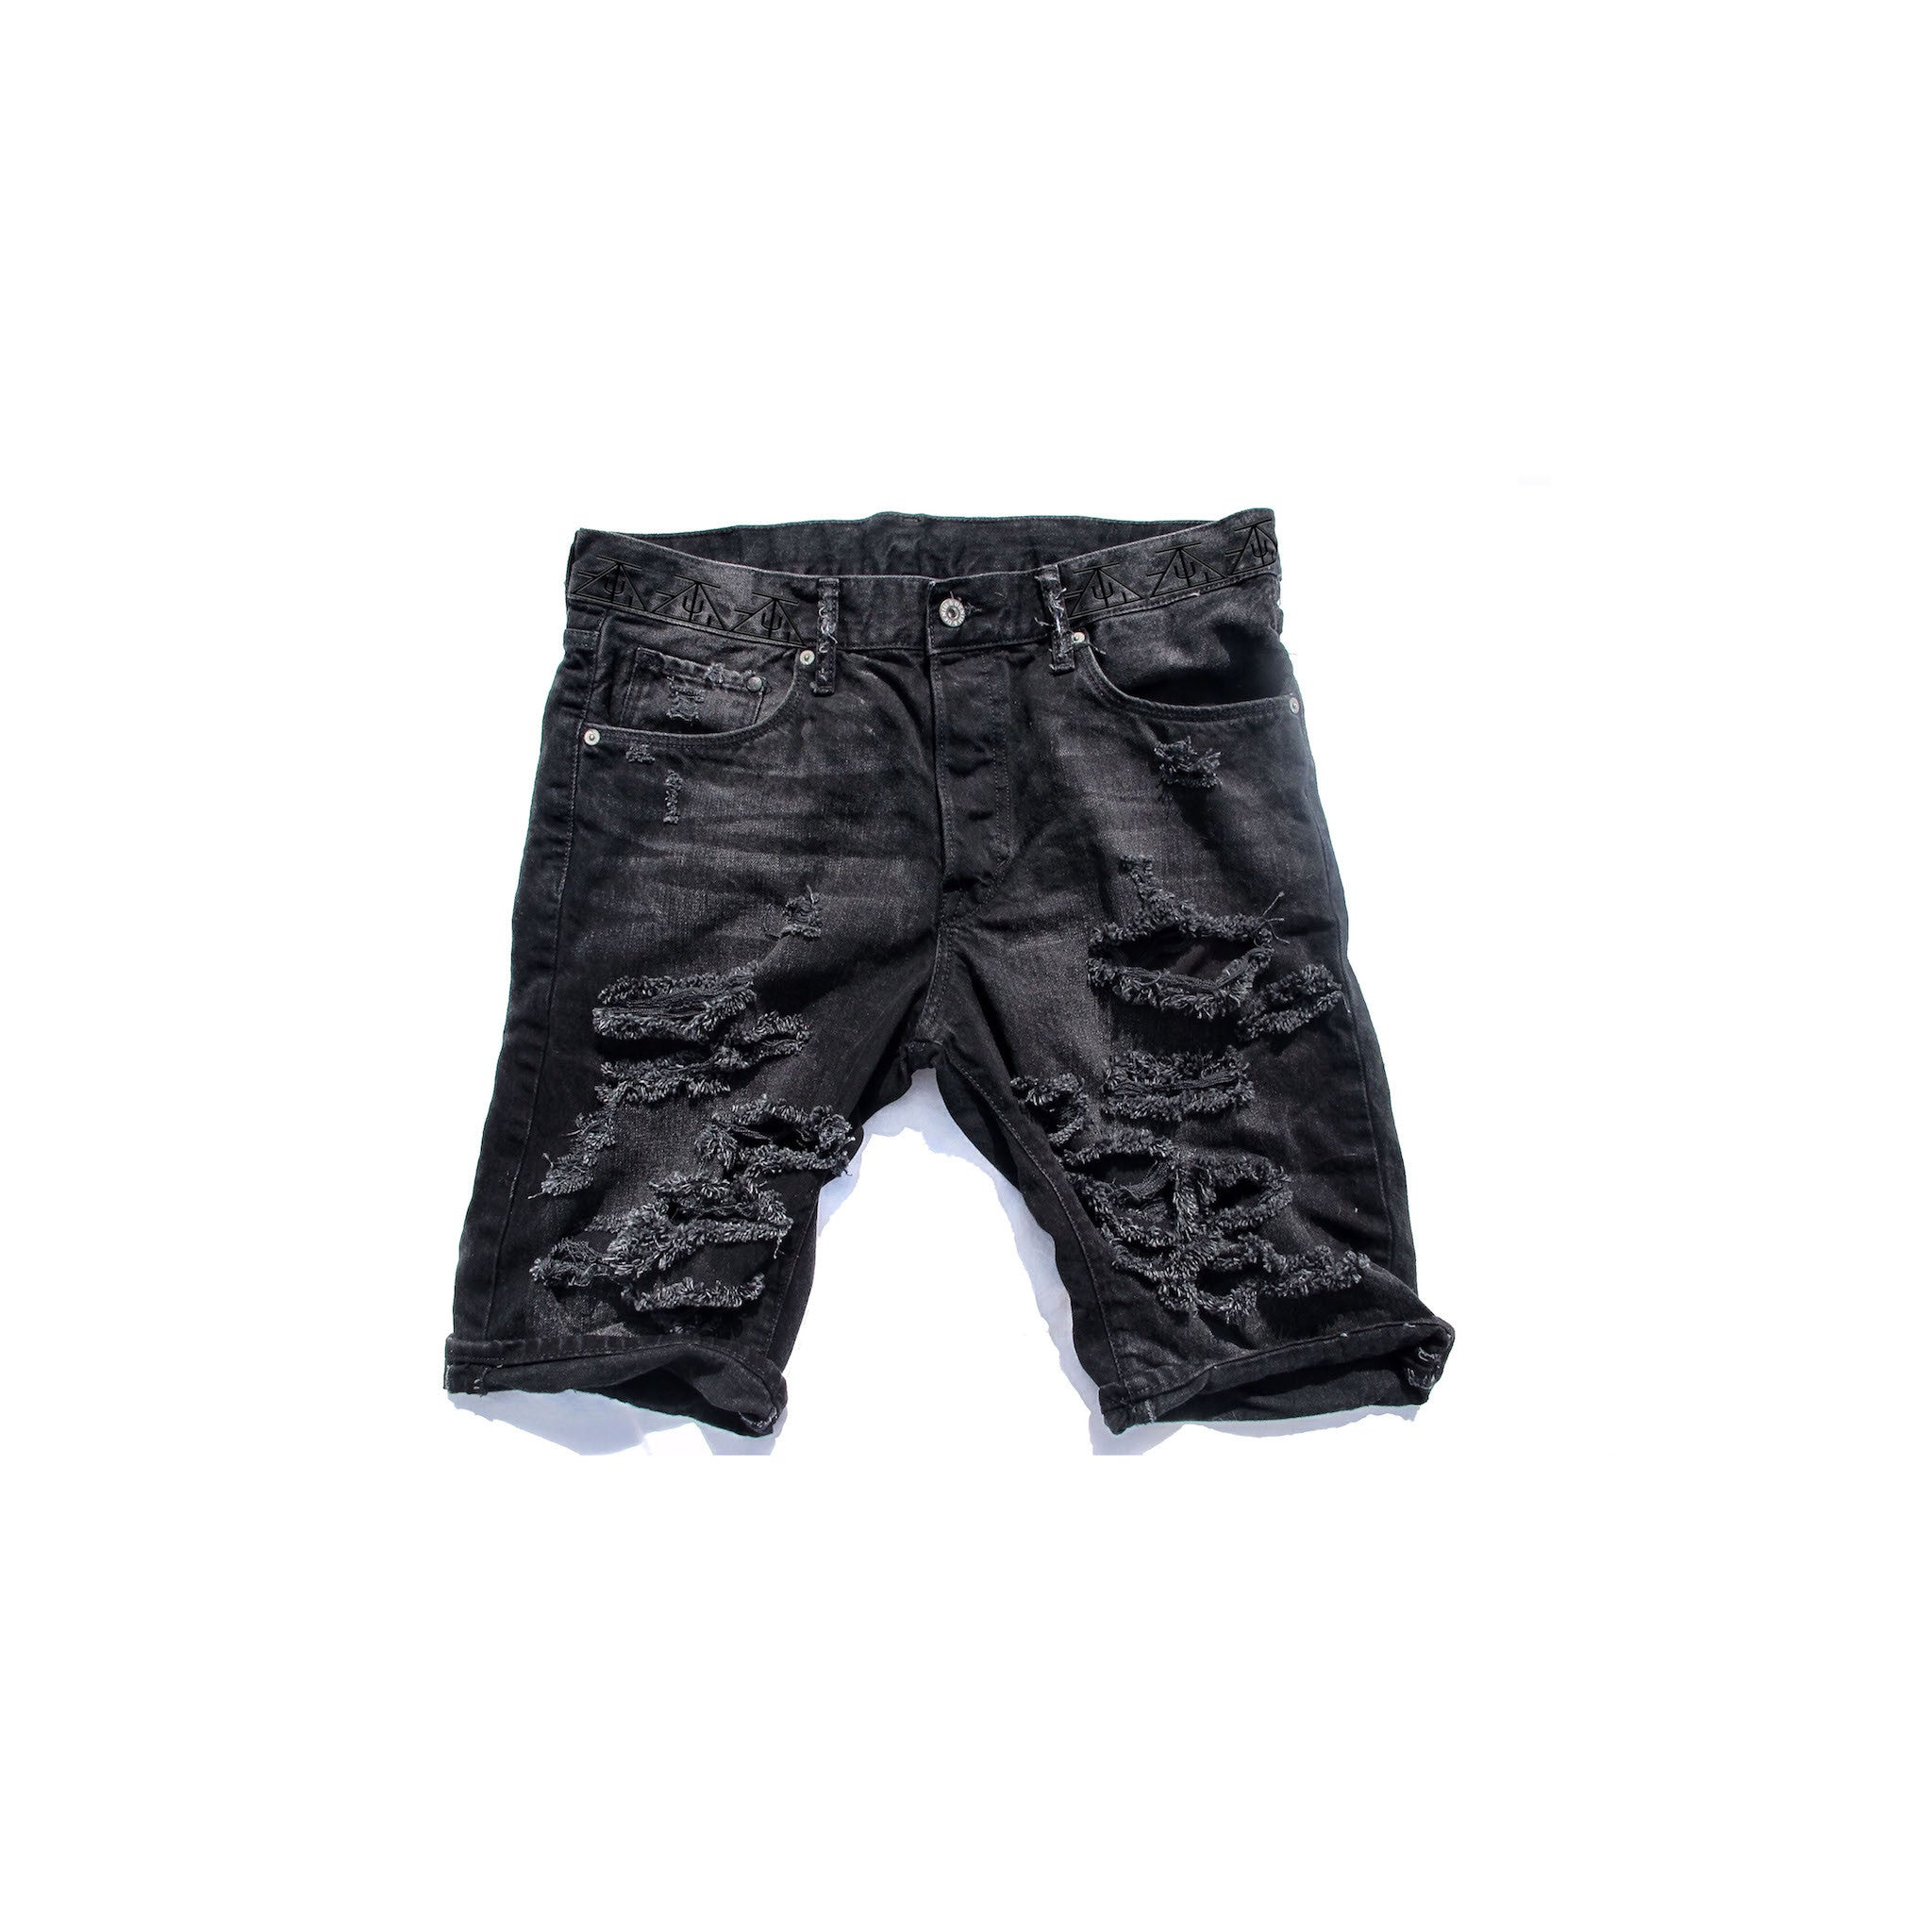 TZUL Black Detailed Distressed Denim Shorts